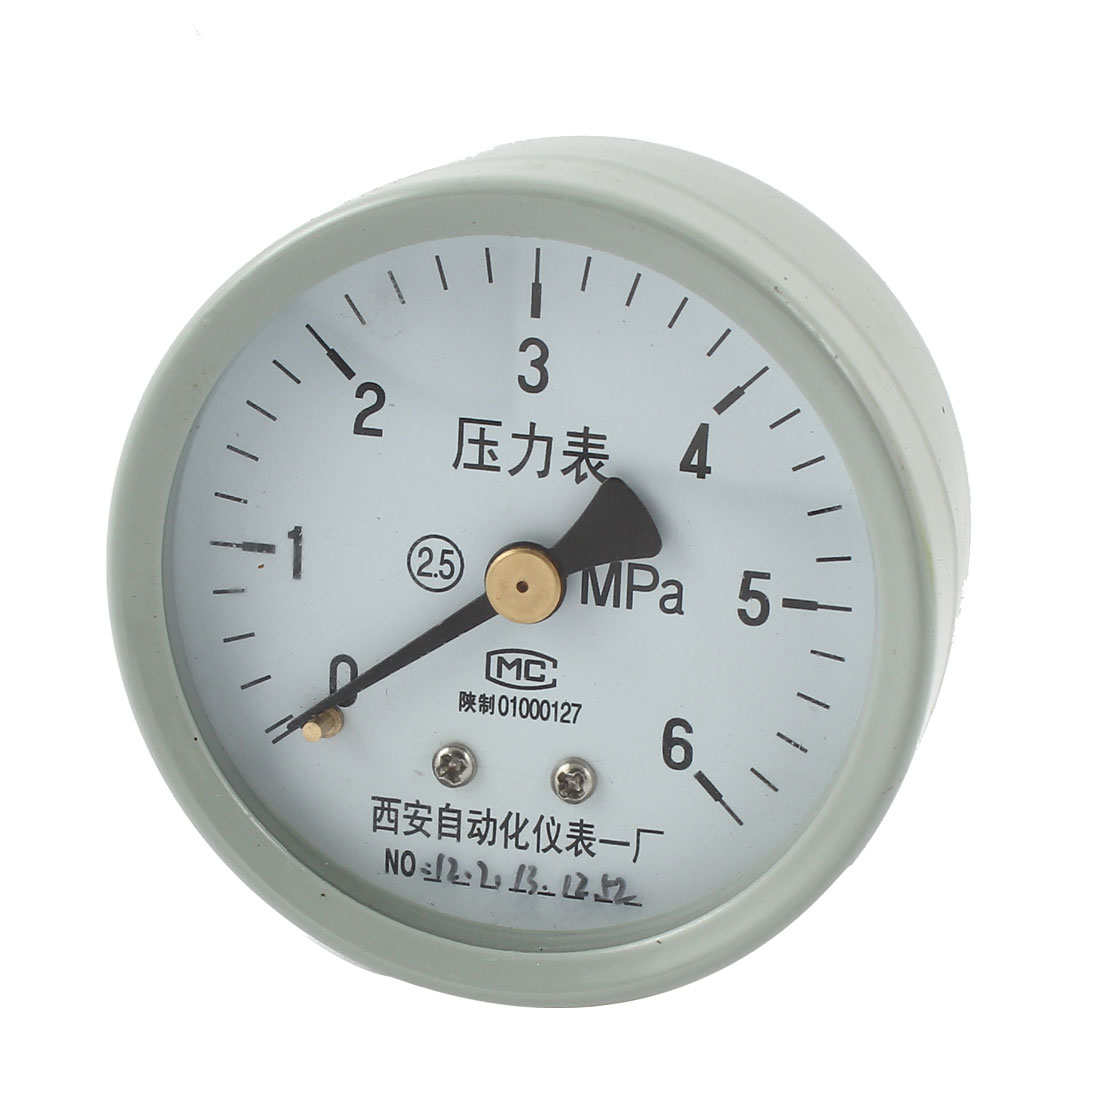 1/4PT Male Threaded 0-6Mpa Arabic Number Display Air Pressure Measuring Gauge